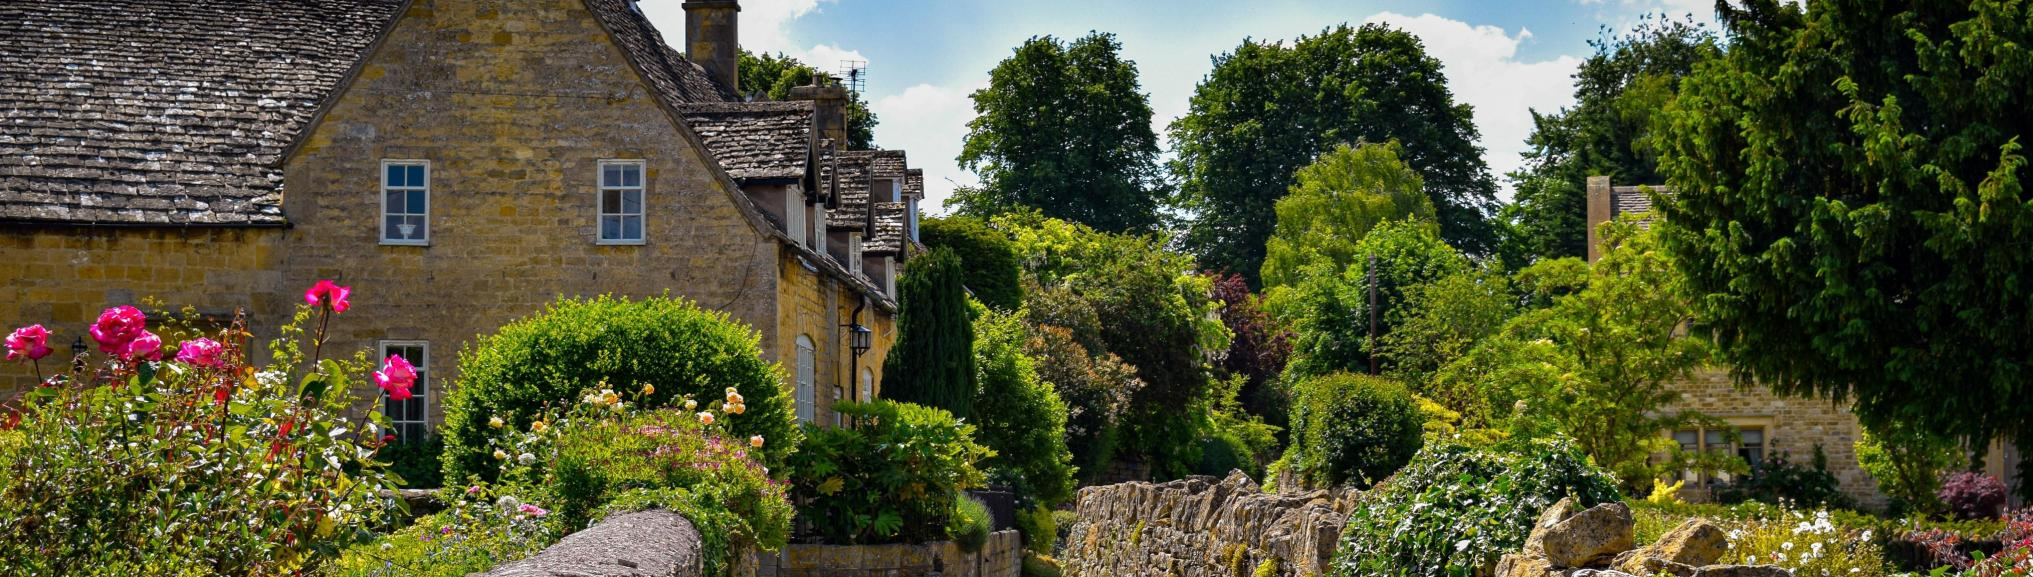 Stanton, The Cotswolds